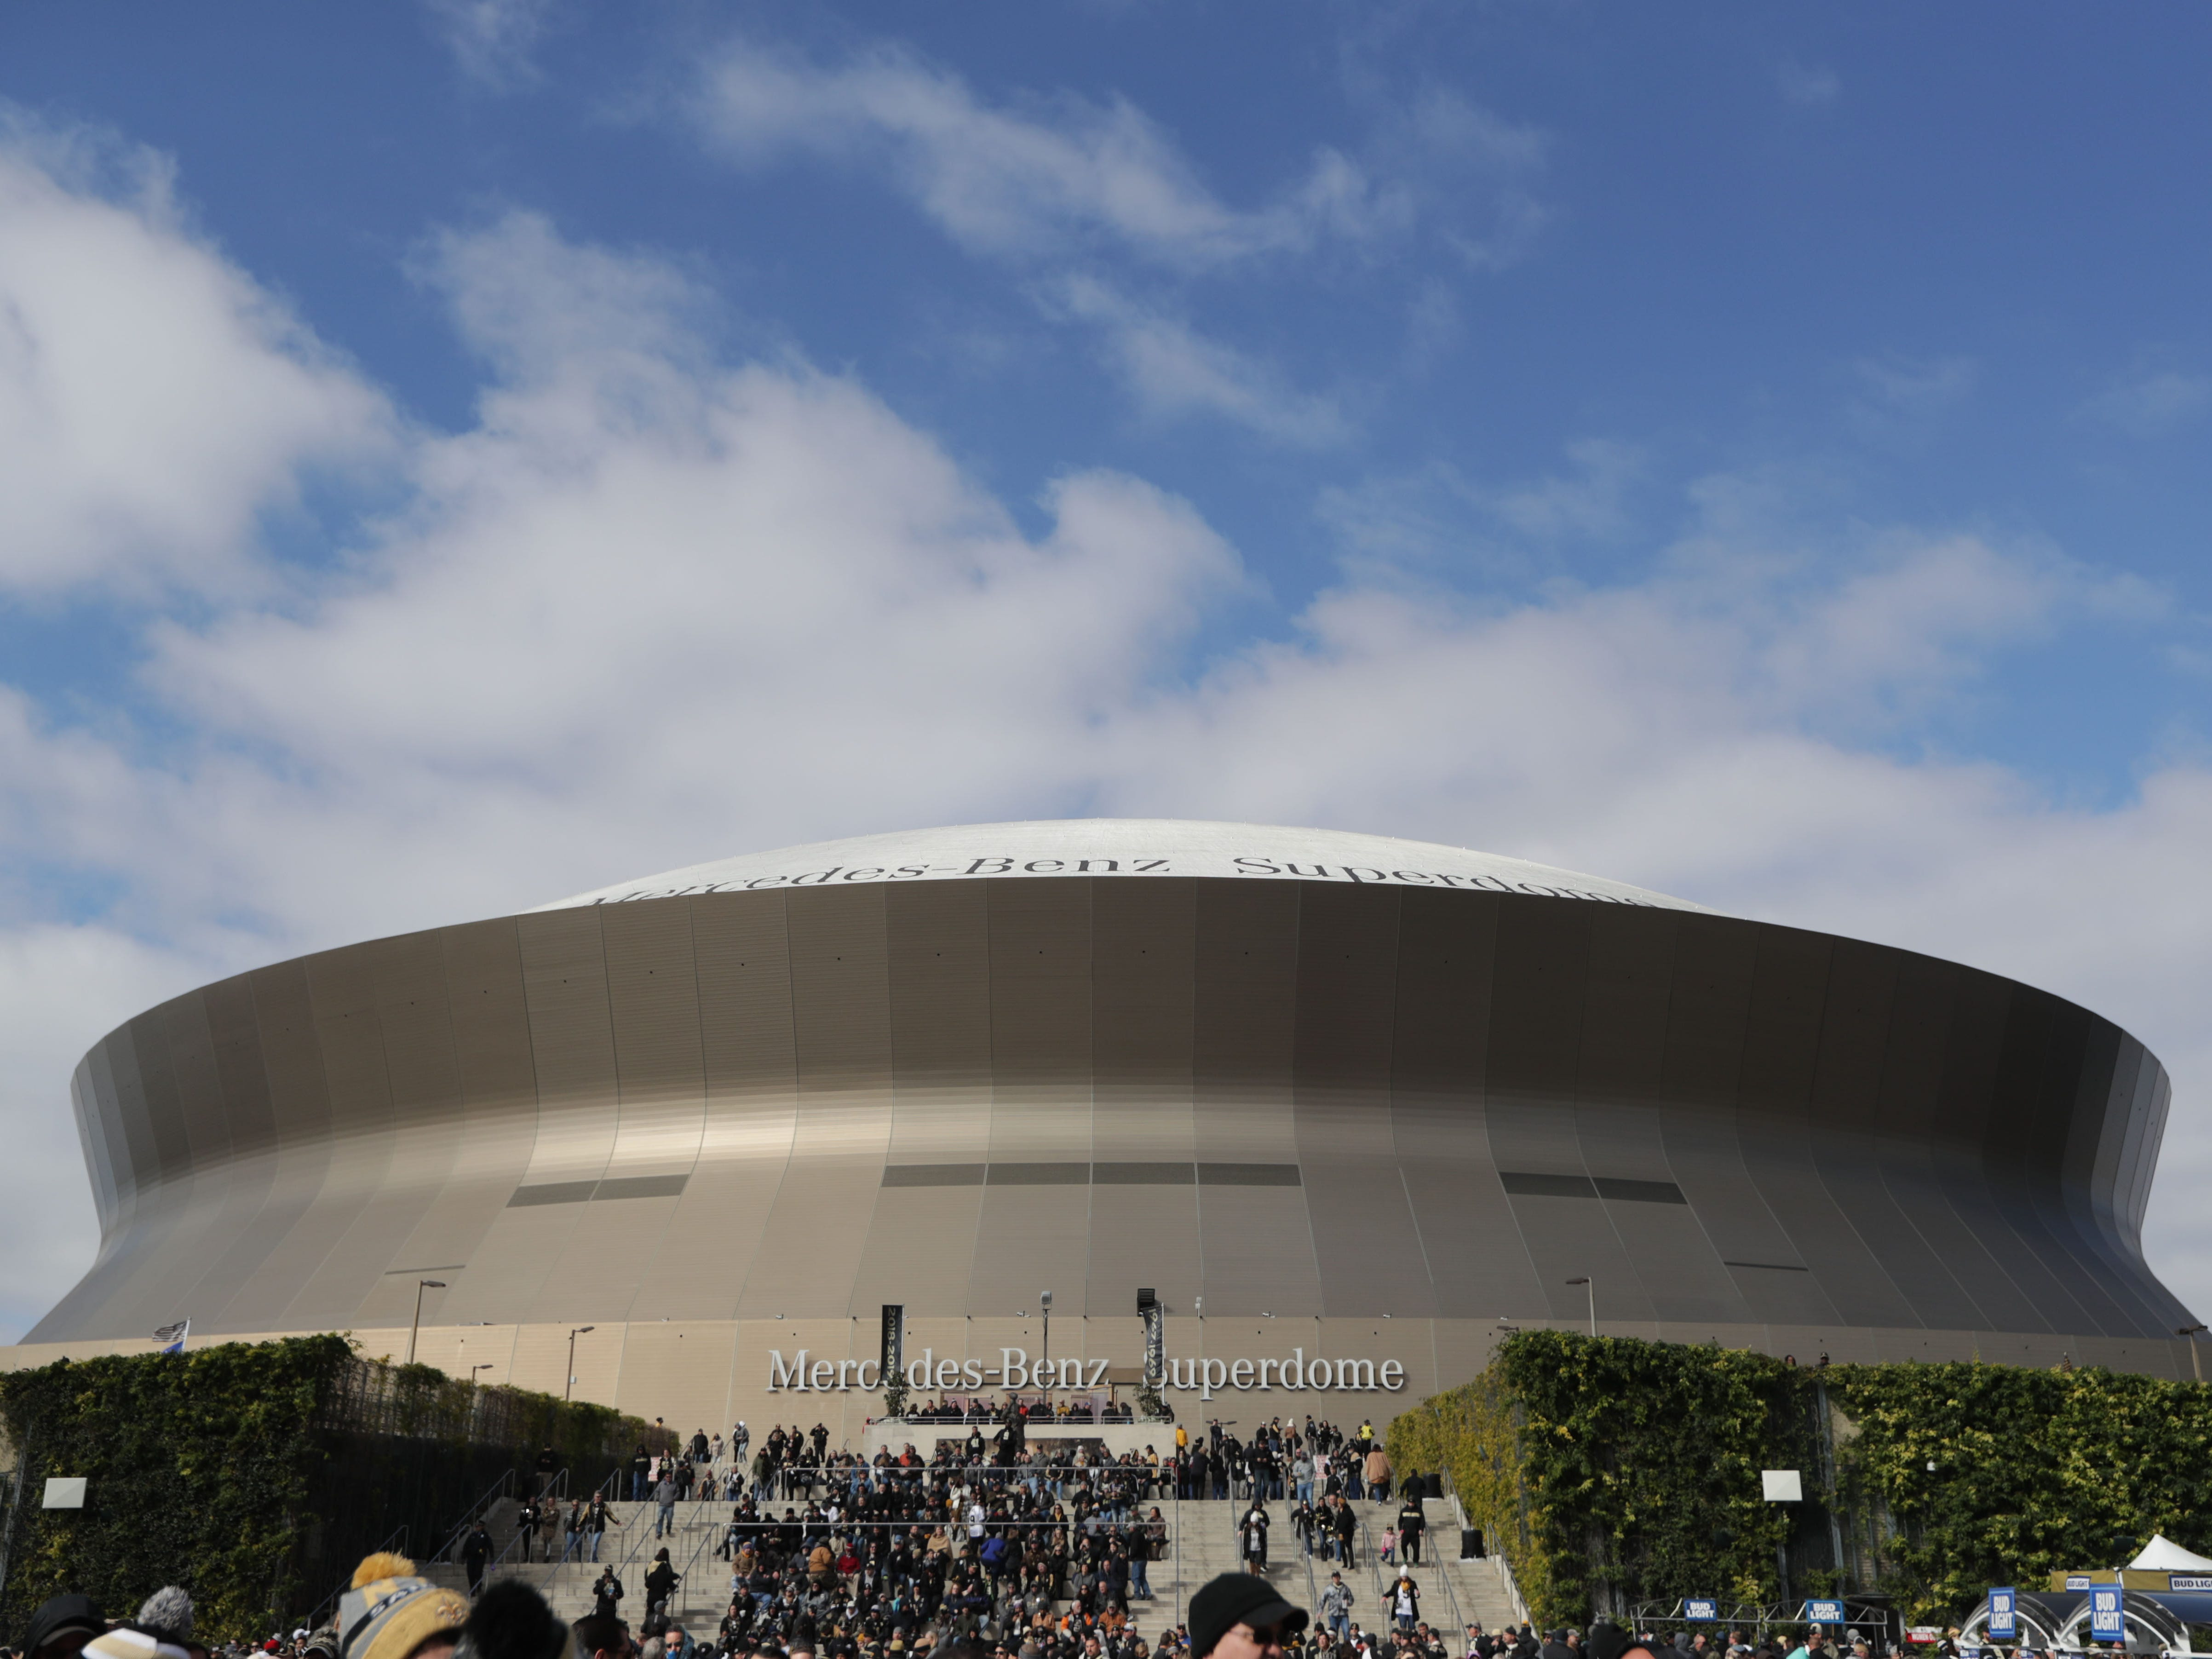 Fans wait outside the Mercedes-Benz Superdome before the NFC Championship game between the New Orleans Saints and the Los Angeles Rams.